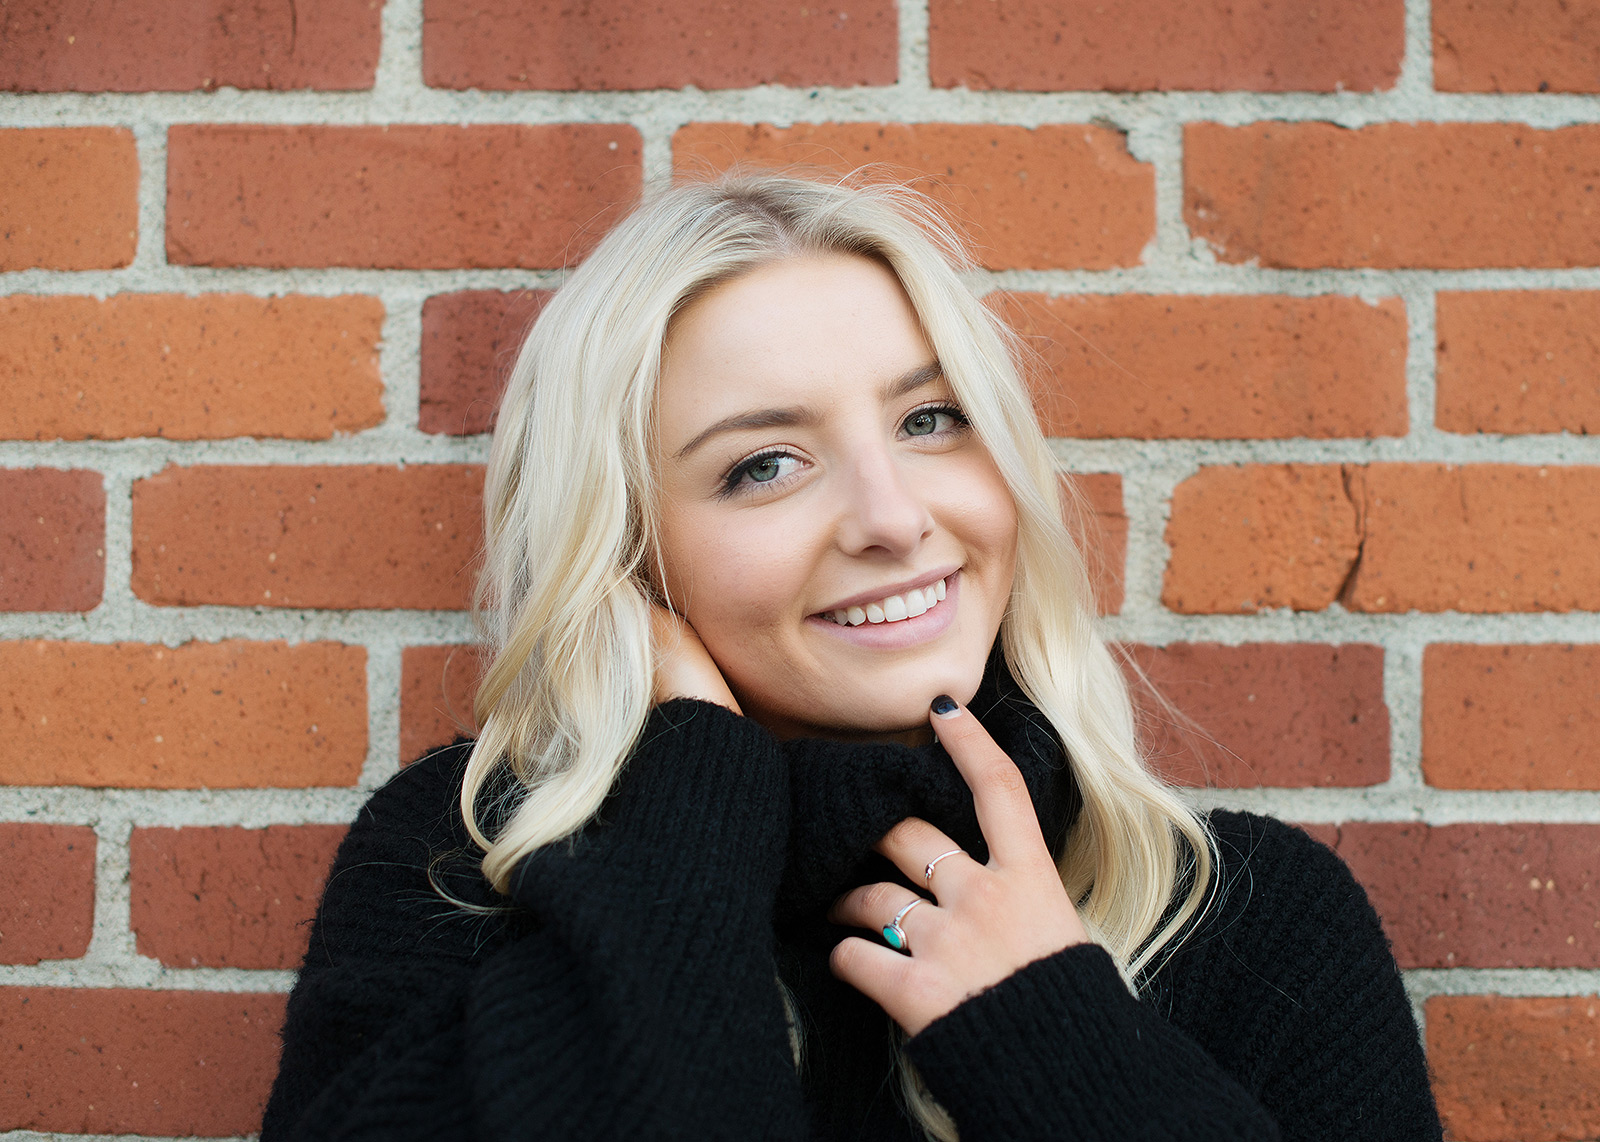 Senior portrait of teen girl smiling against brick wall background in State Capitol